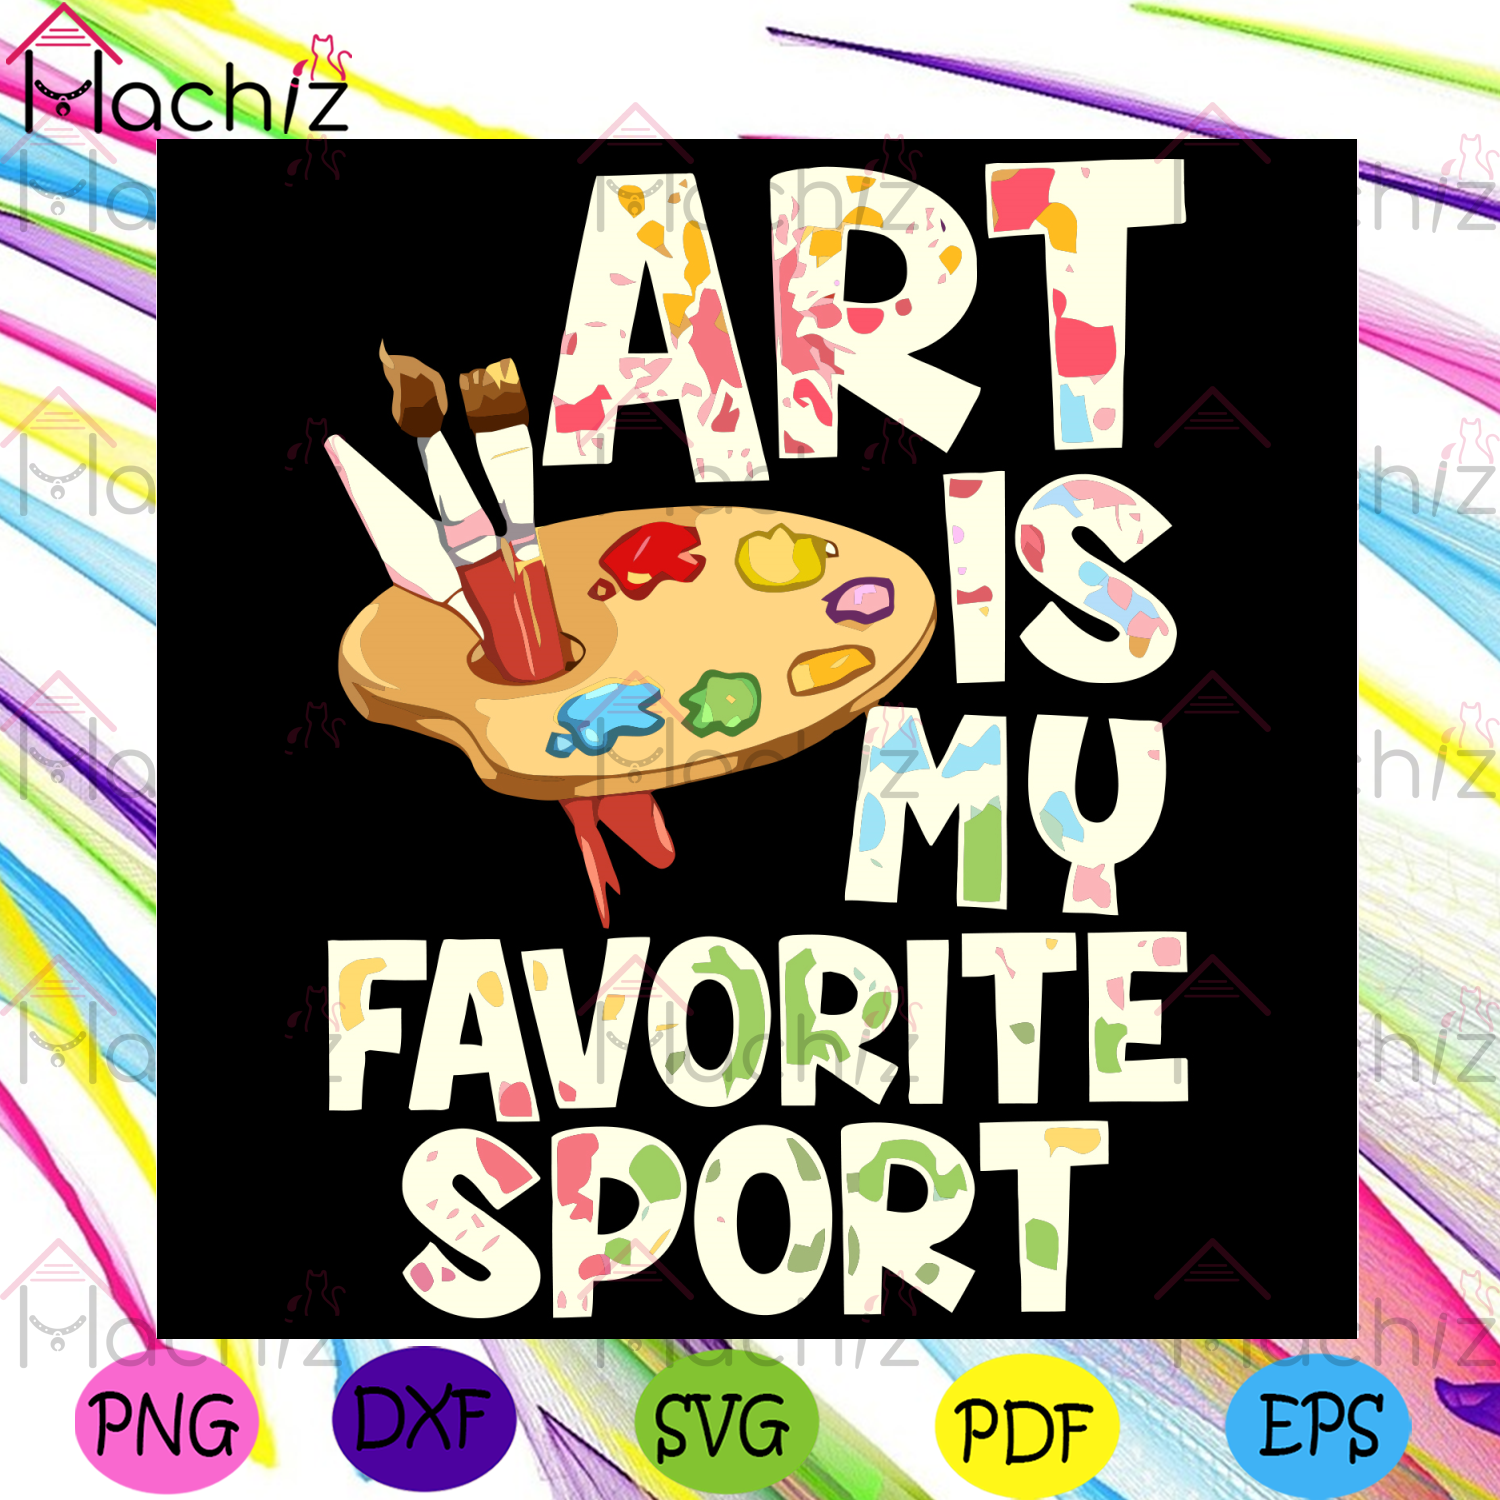 Art Is My Favorite Sport Svg, Trending Svg, Art Svg, Painter Svg, Sport Svg, Painting Svg, Artist Svg, Painting Lovers Svg, Color Svg, Favorite Sport Svg, Hobby Svg, Art Lovers Svg, Art Gift Svg, Quotes Svg, Coloring Svg, Picture Svg